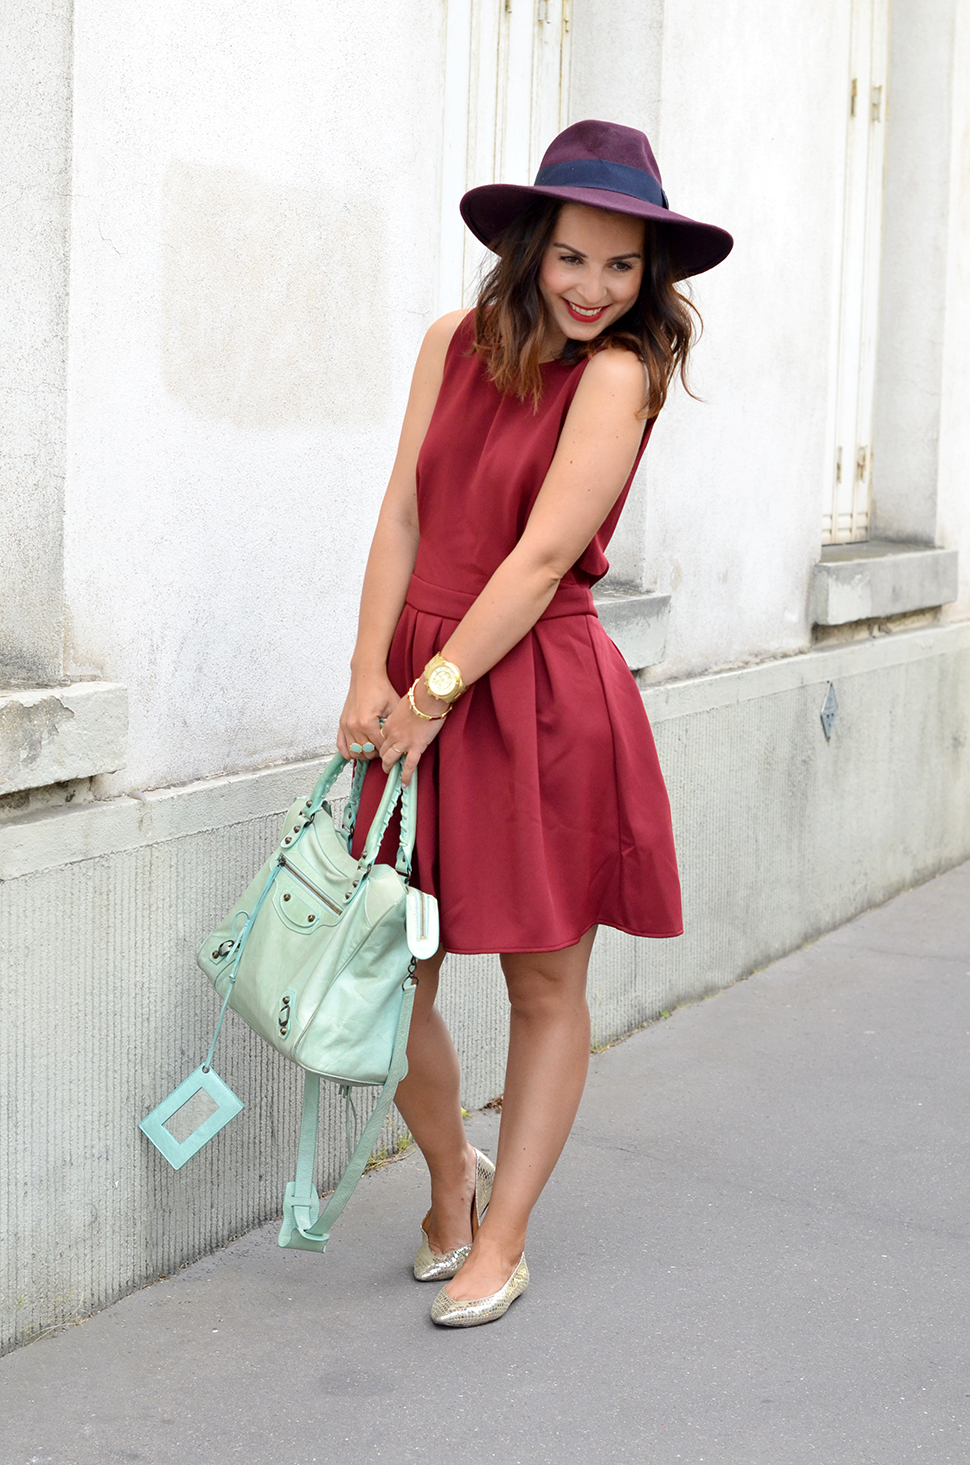 Helloitsvalentine_Burgundy_dress_4